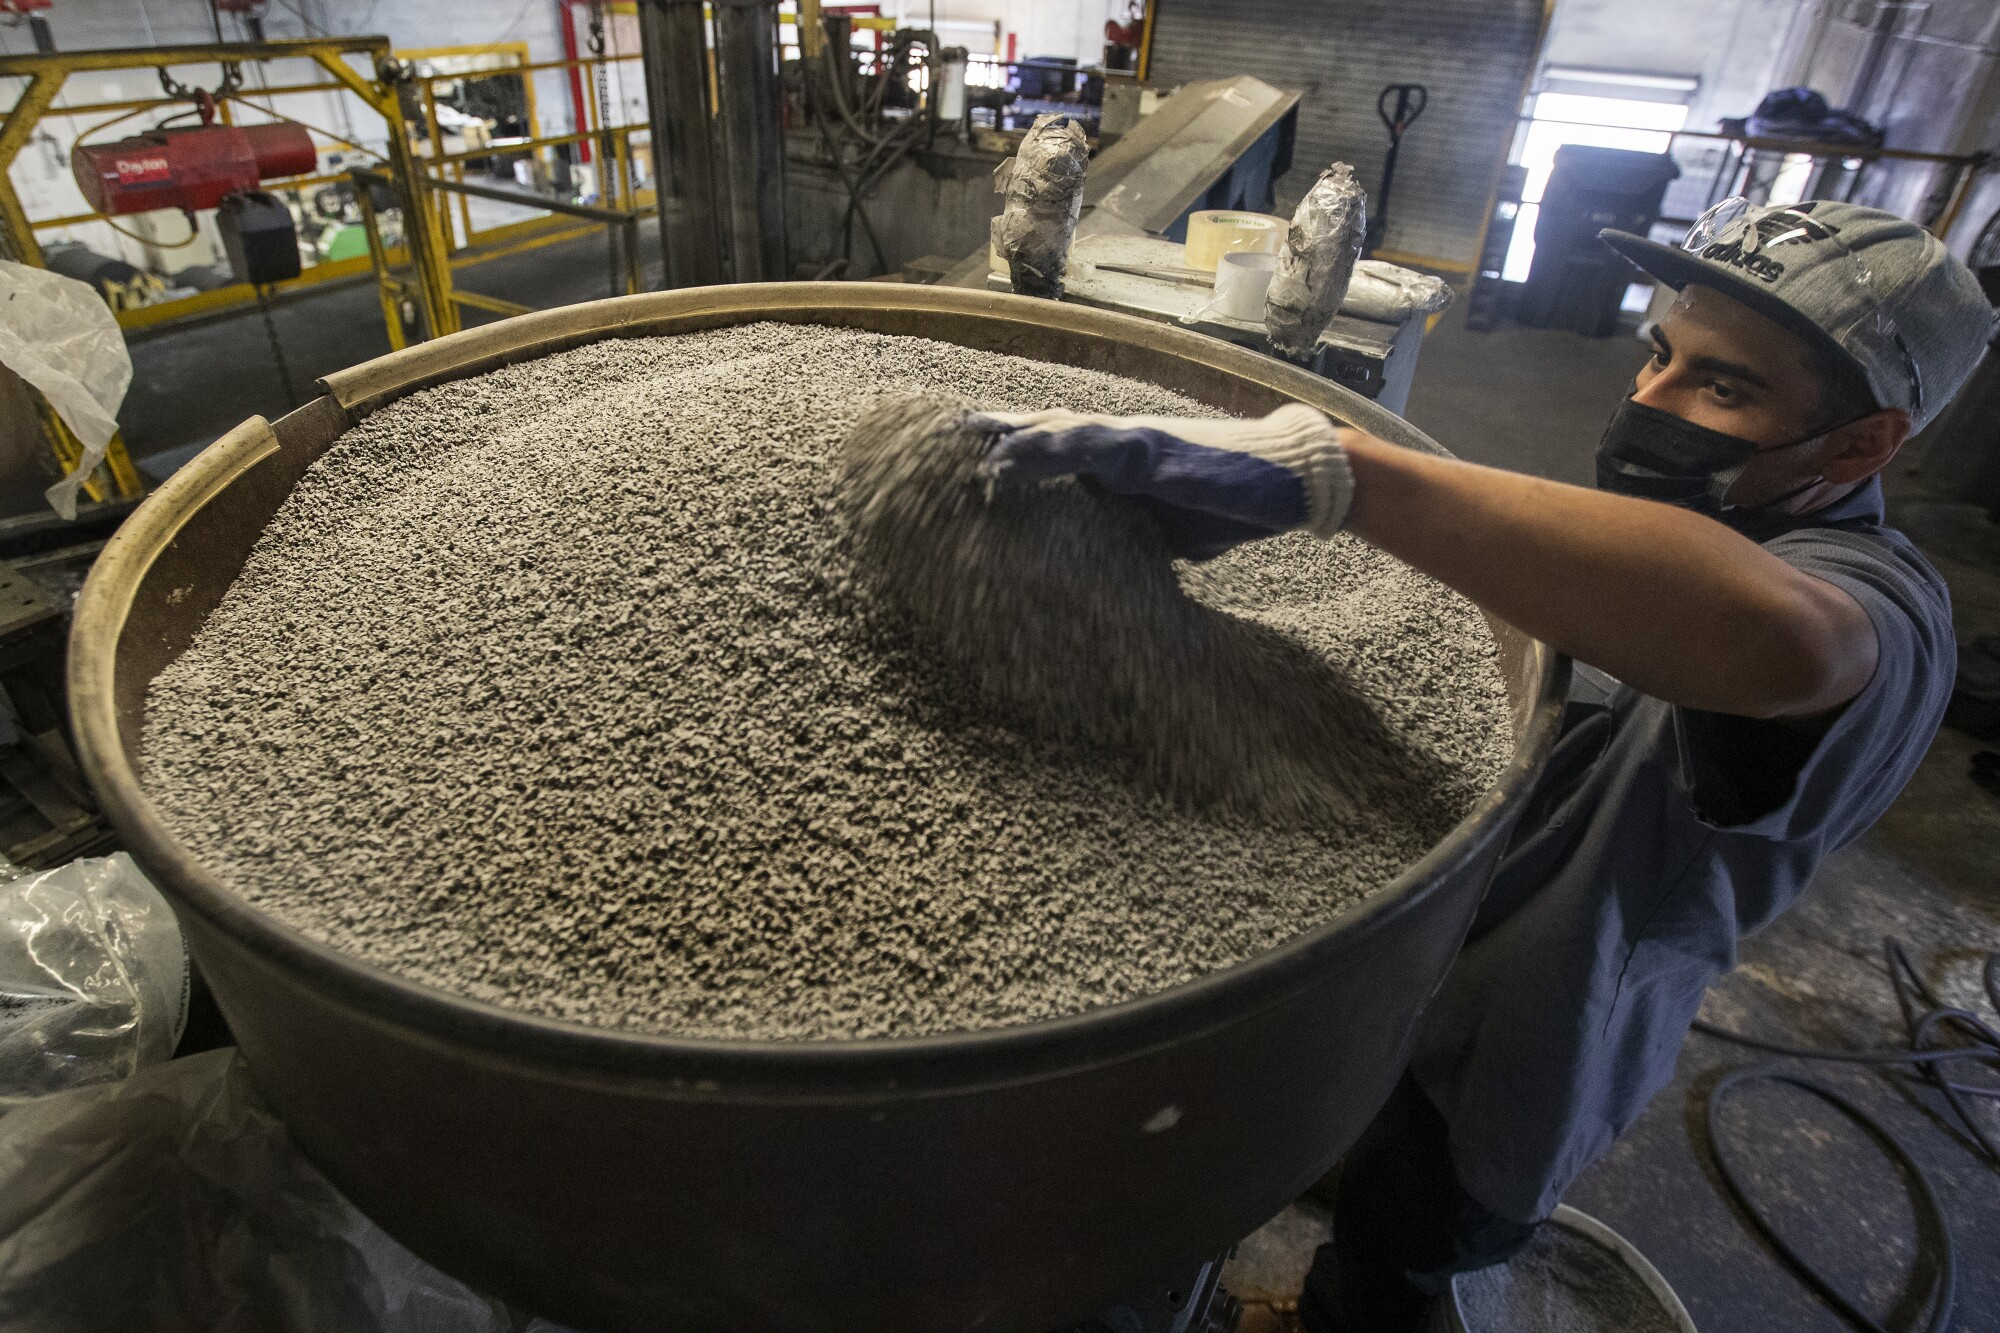 Jonathan Contreras, 28, adds gray coloring, to be mixed in with ground up rubber to make rubber tiles.